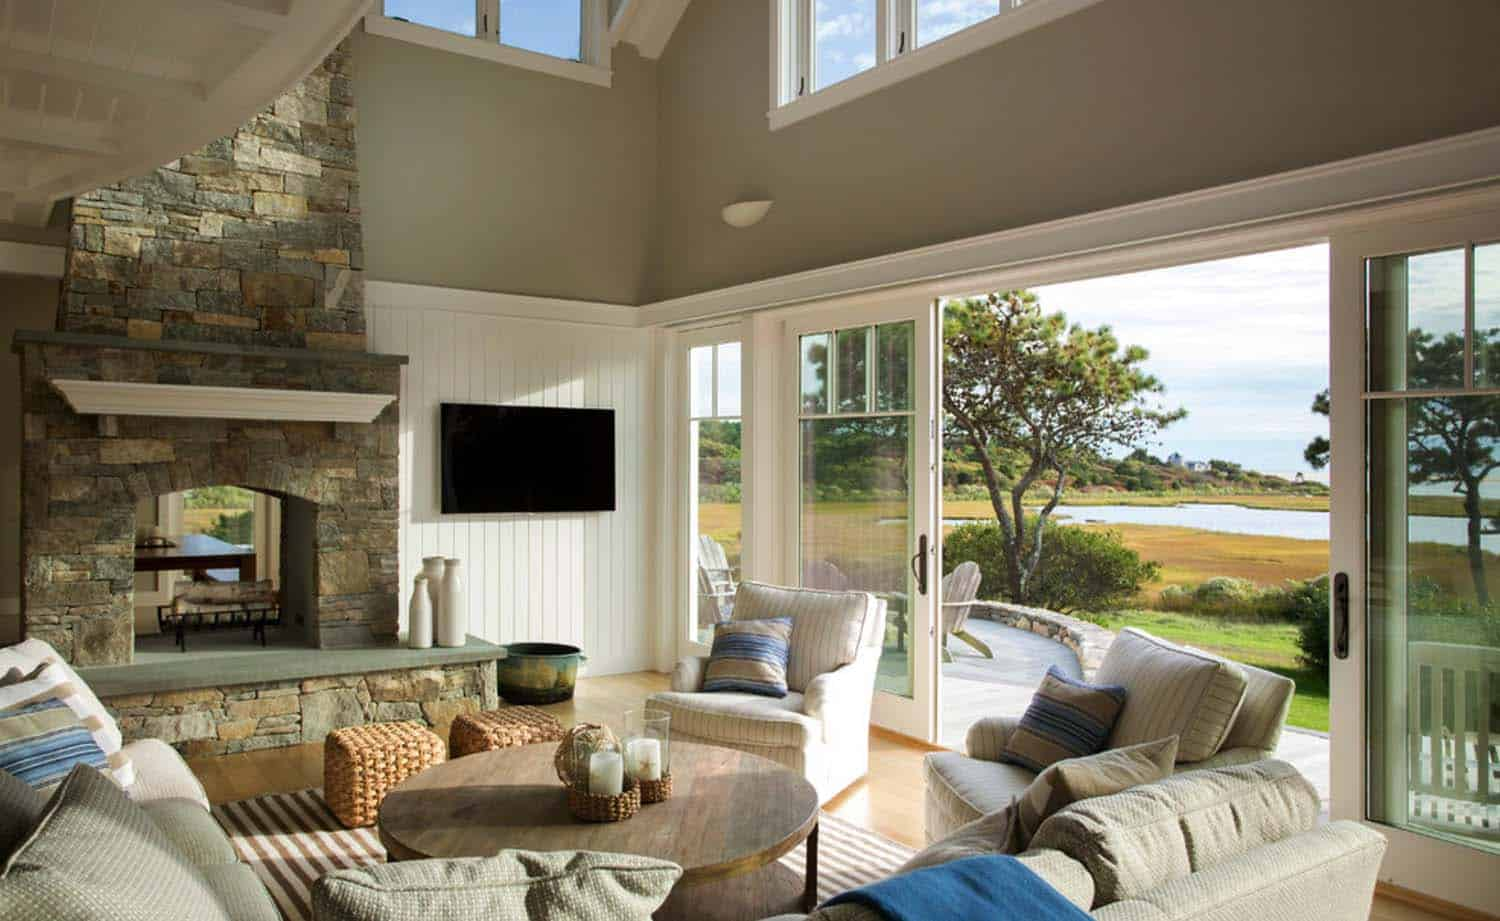 Meuble En Rotin A Vendre Seaside Home On Martha's Vineyard Inspired By Nautical